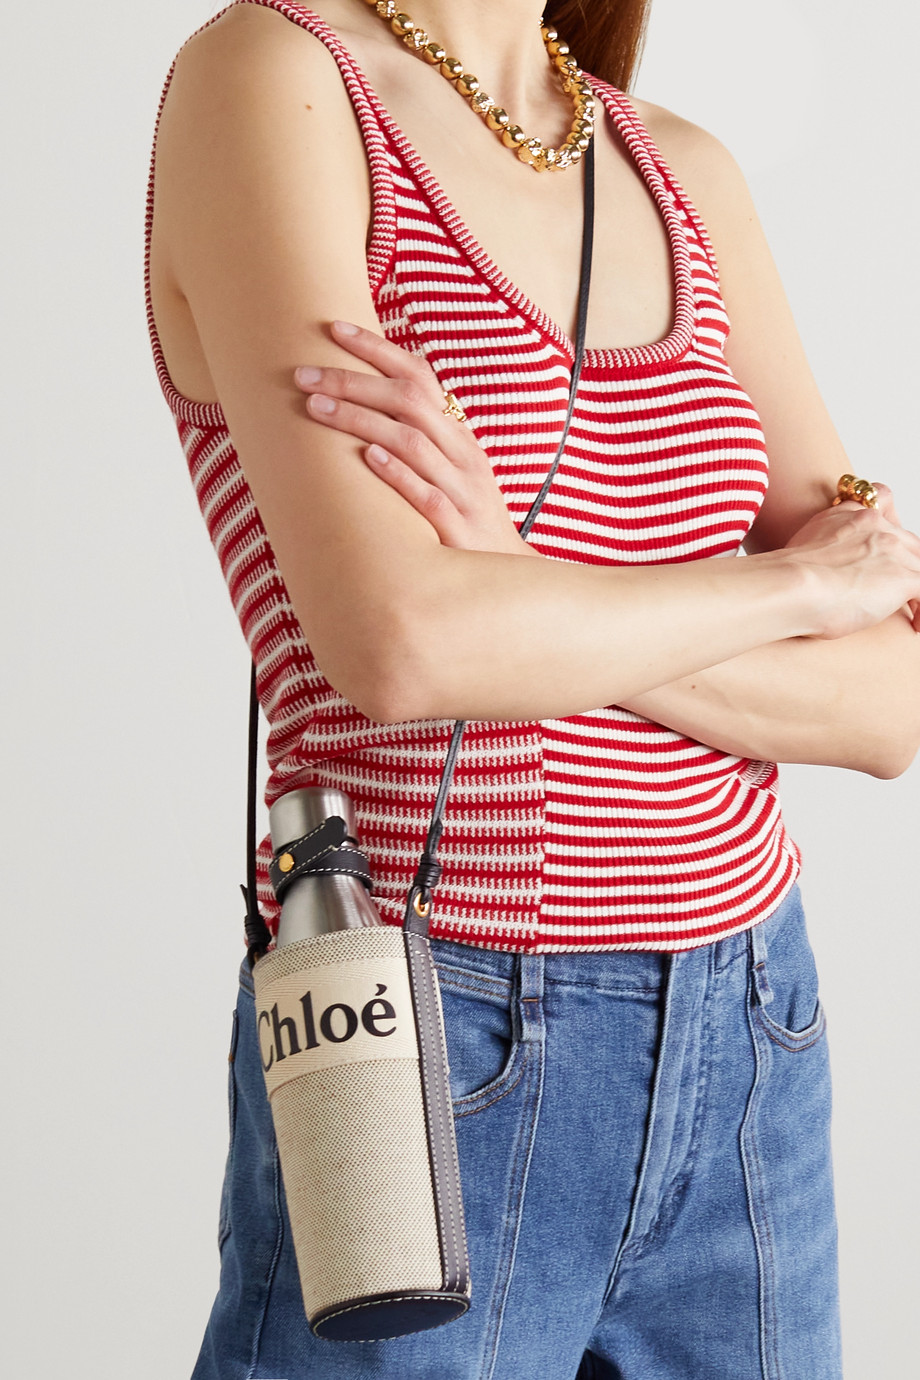 Chloé Fredy leather-trimmed printed cotton-canvas bag and bottle